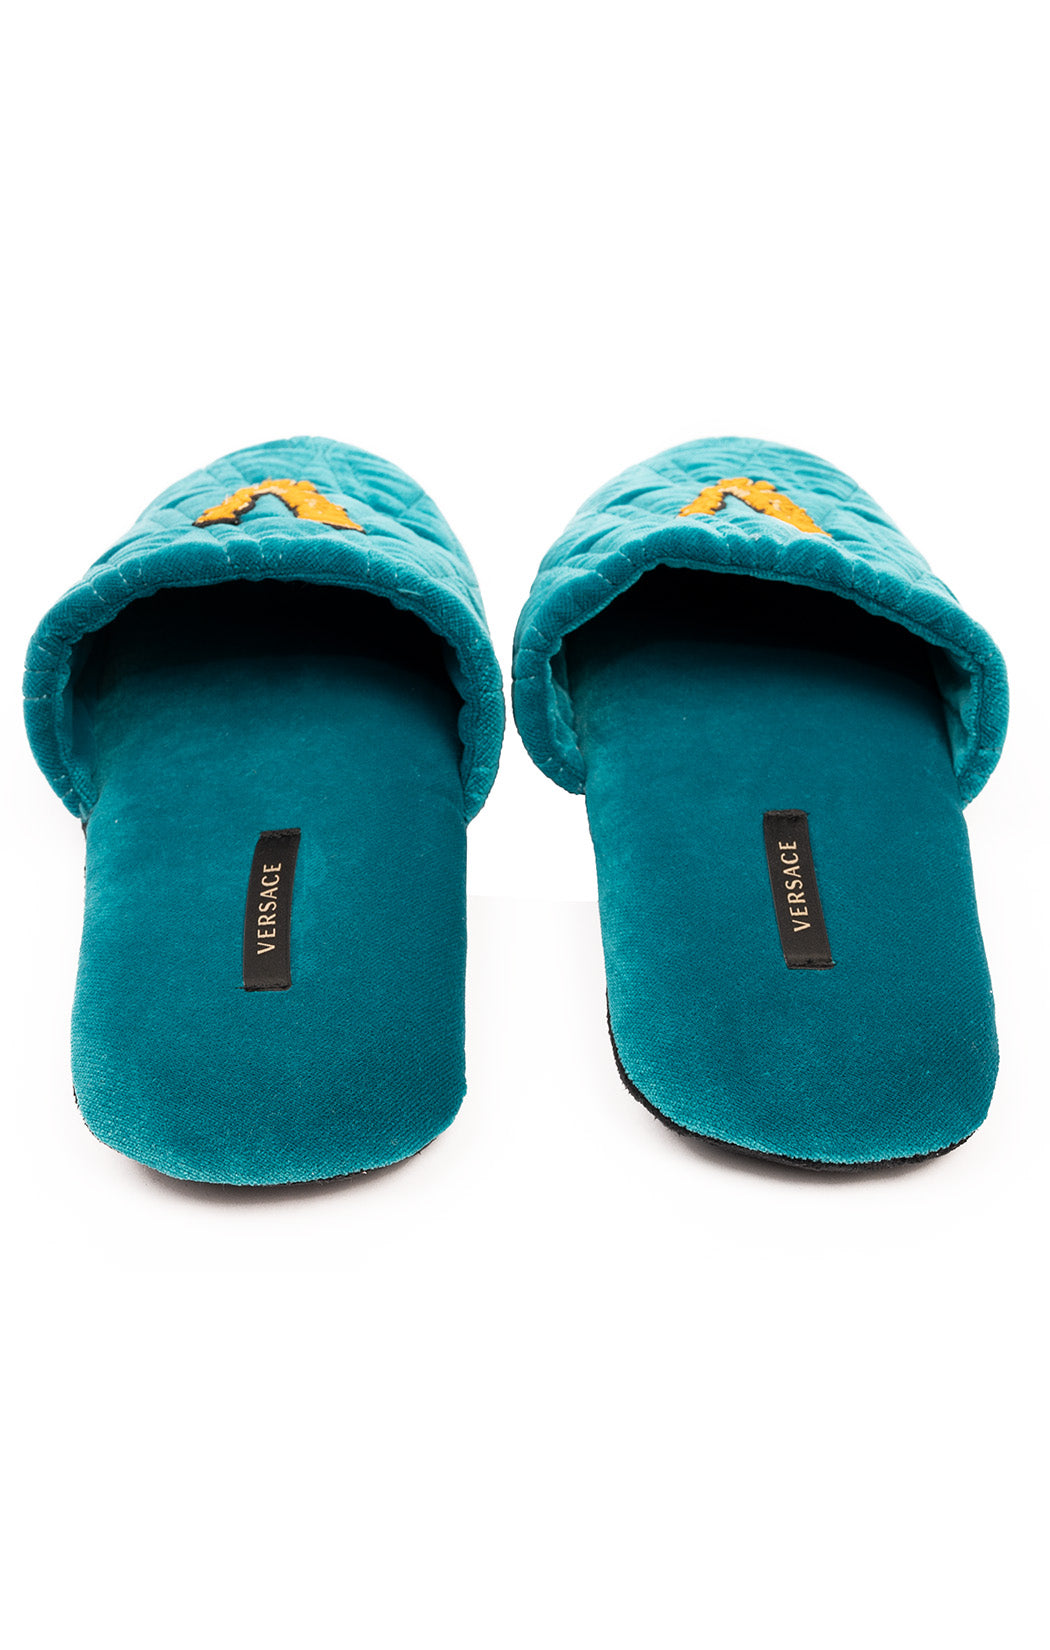 Turquoise dark blue with gold emblem quilted slippers